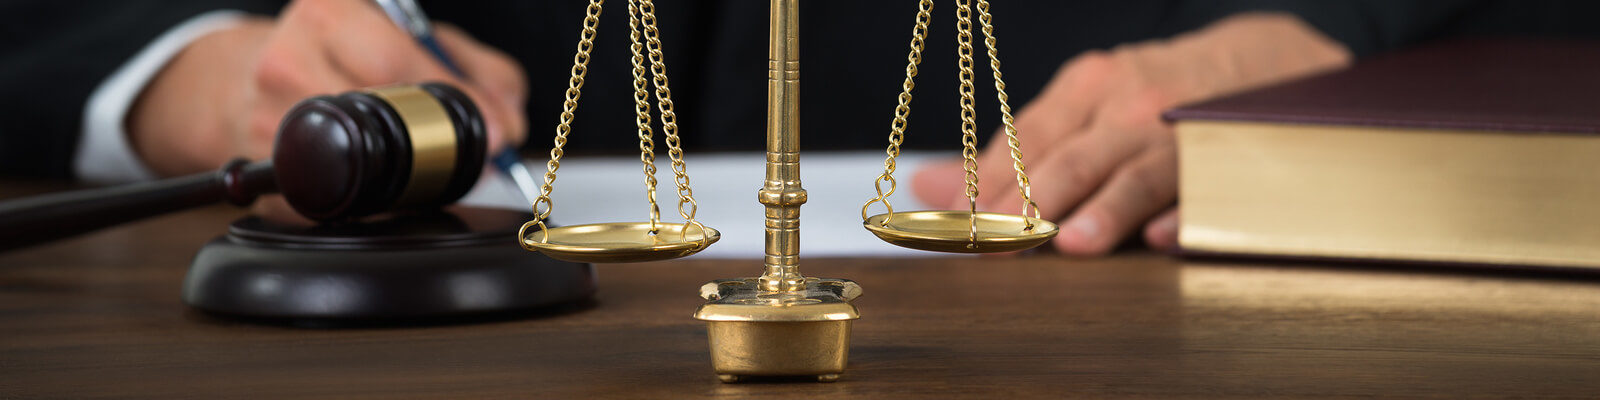 cropped-bigstock-Law-Scales-On-Table-With-Judge-115270250-1.jpg